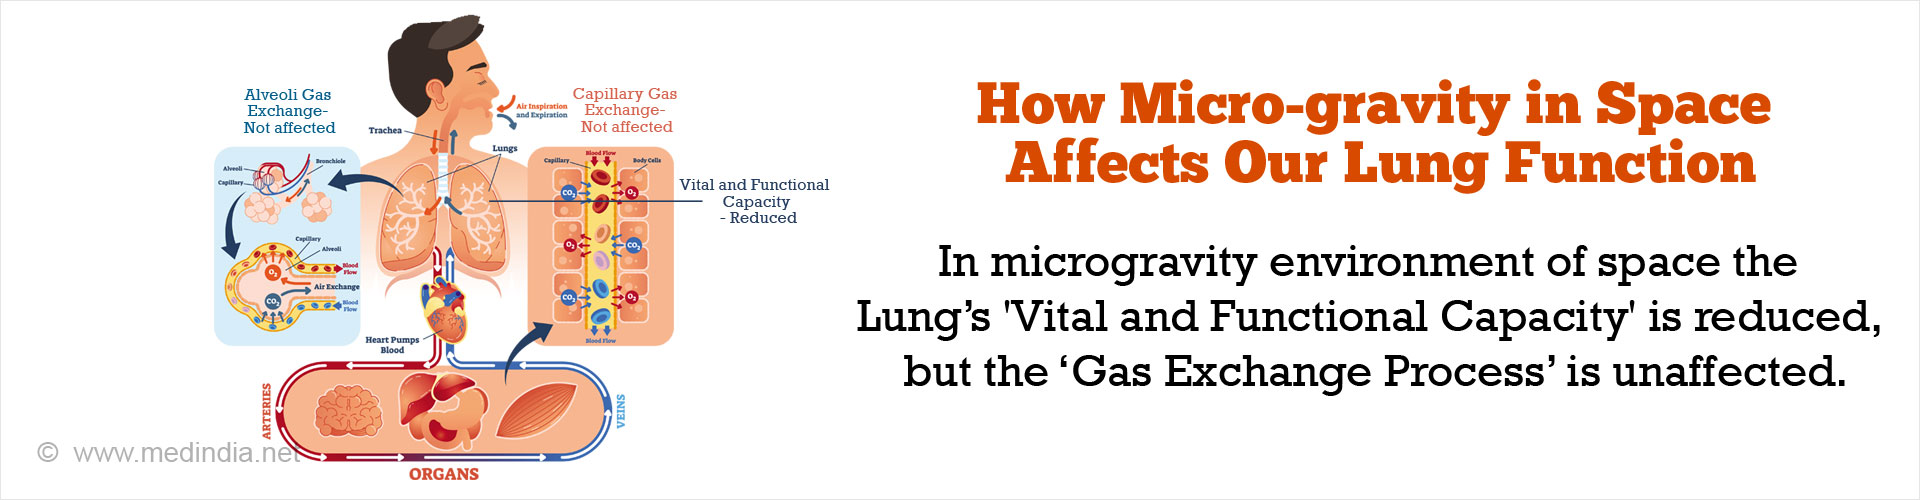 How Micro-gravity in Space Affects Our Lung Function